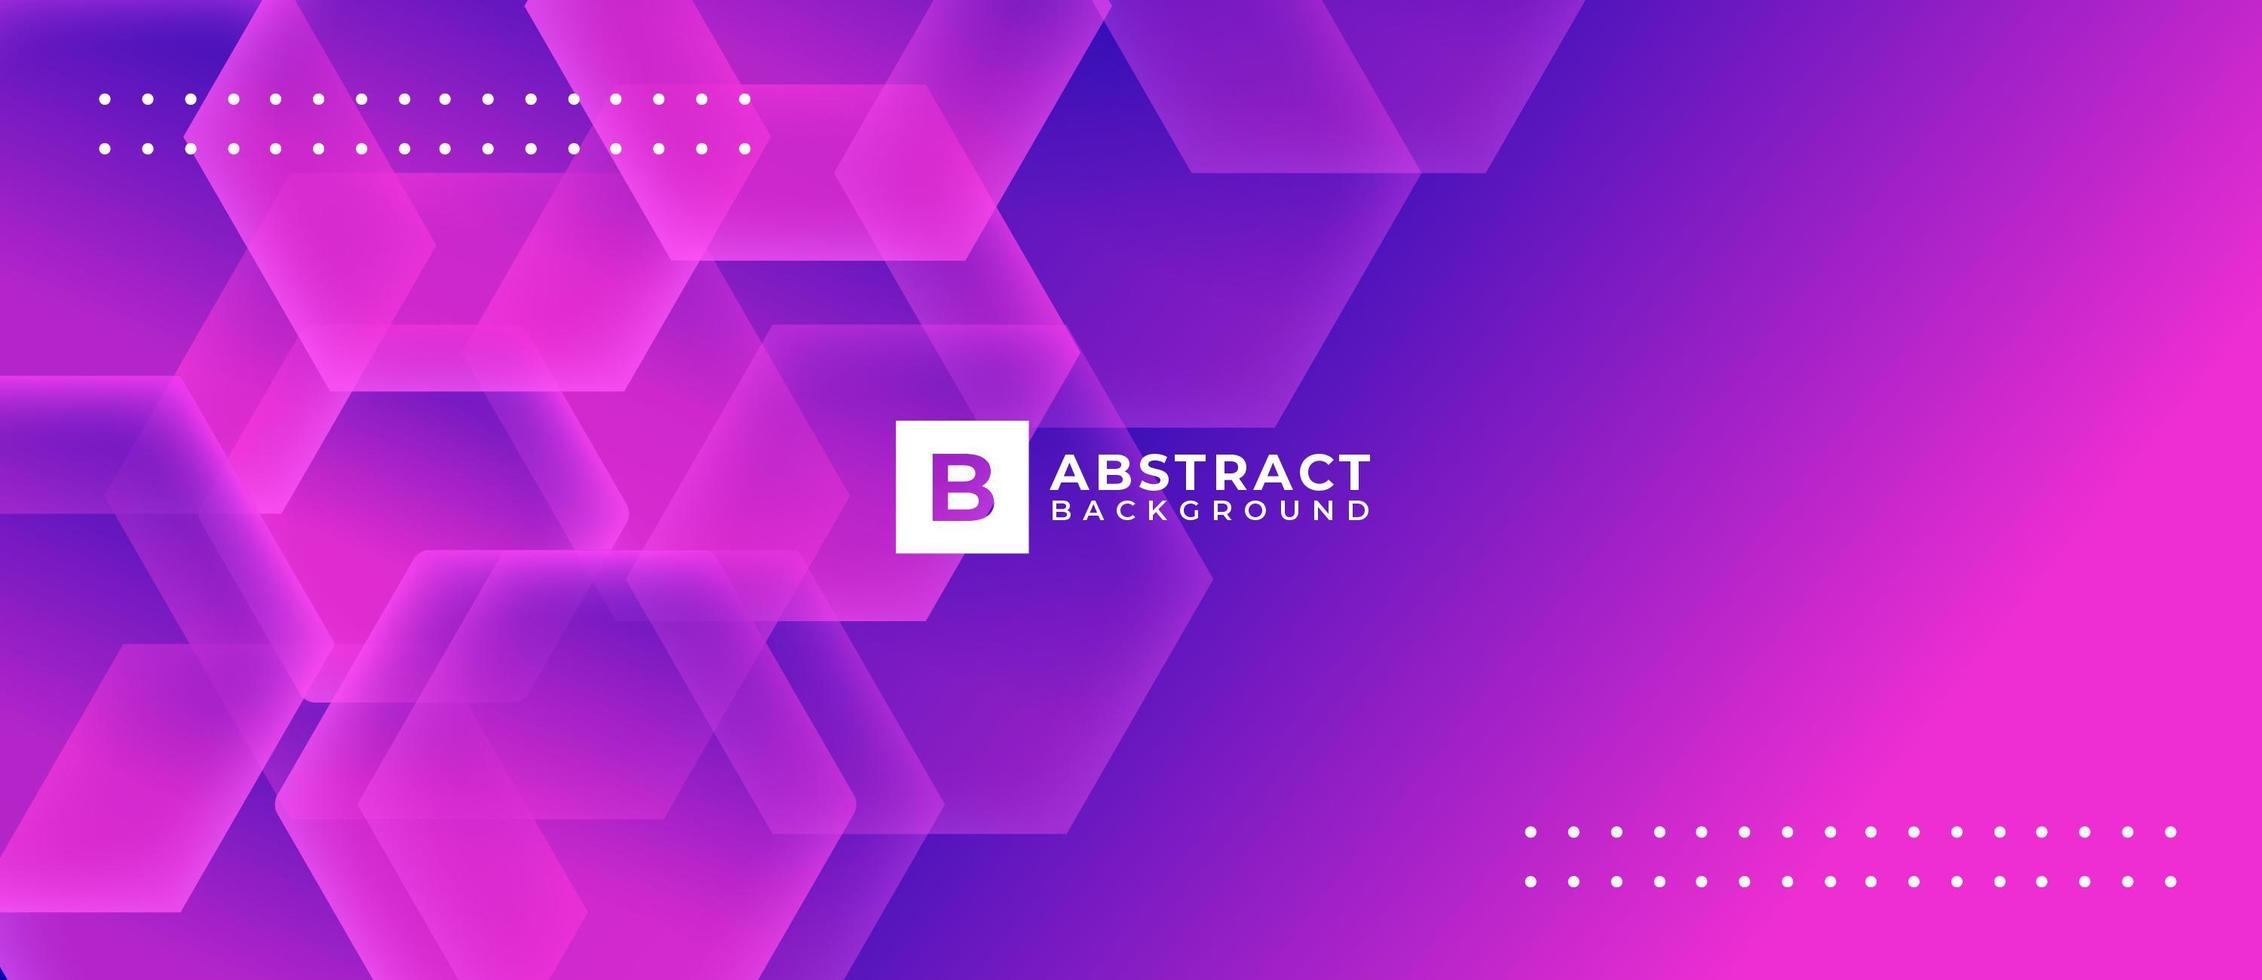 Purple Pink Geometric Shape Abstract Background vector